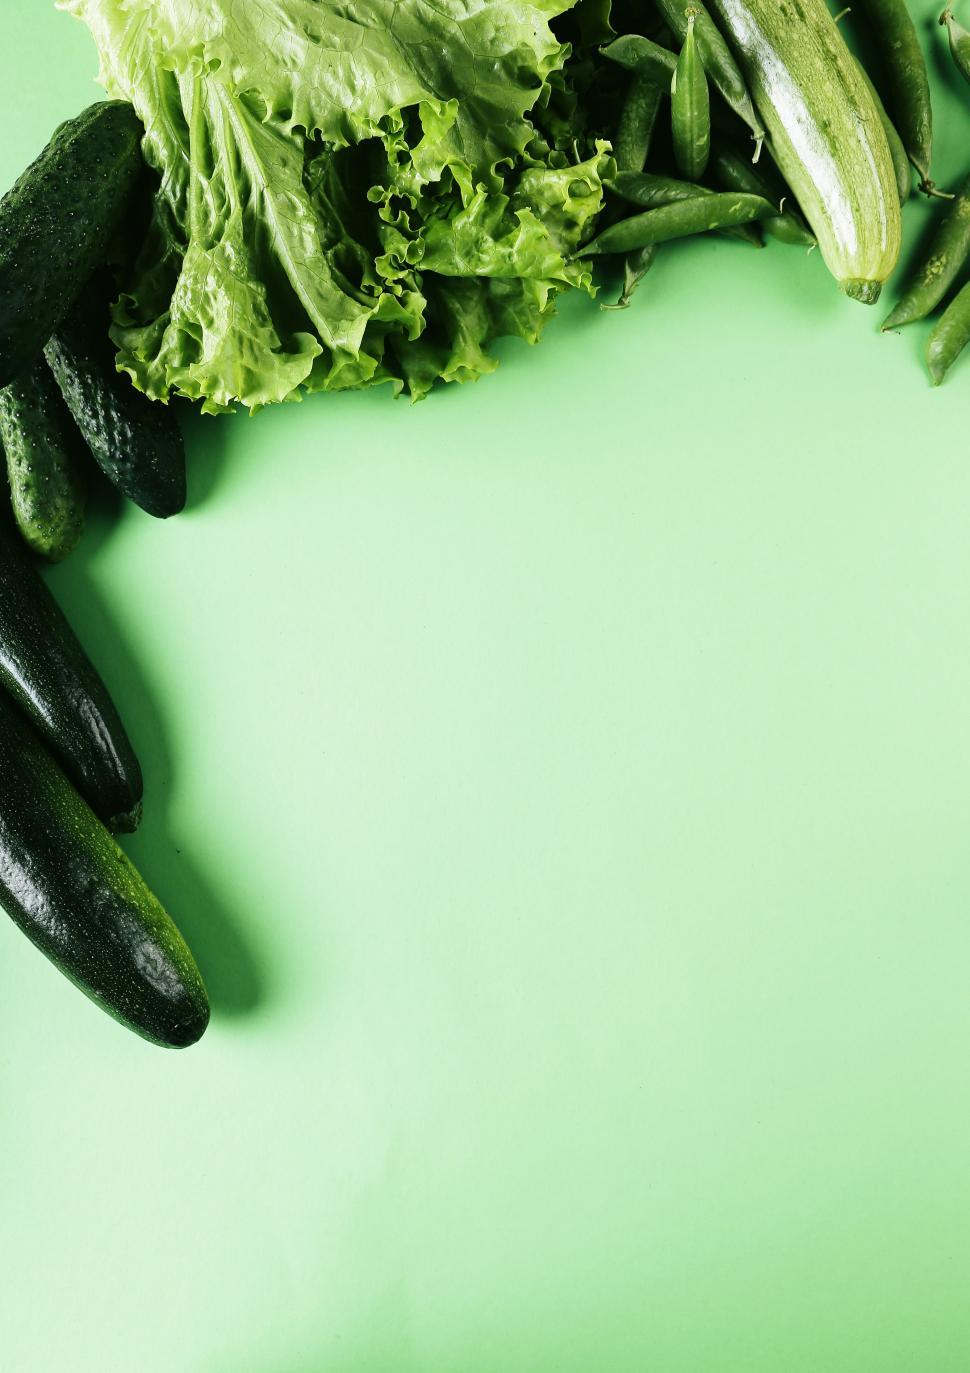 Download Free Stock Photo of Green Vegetable background